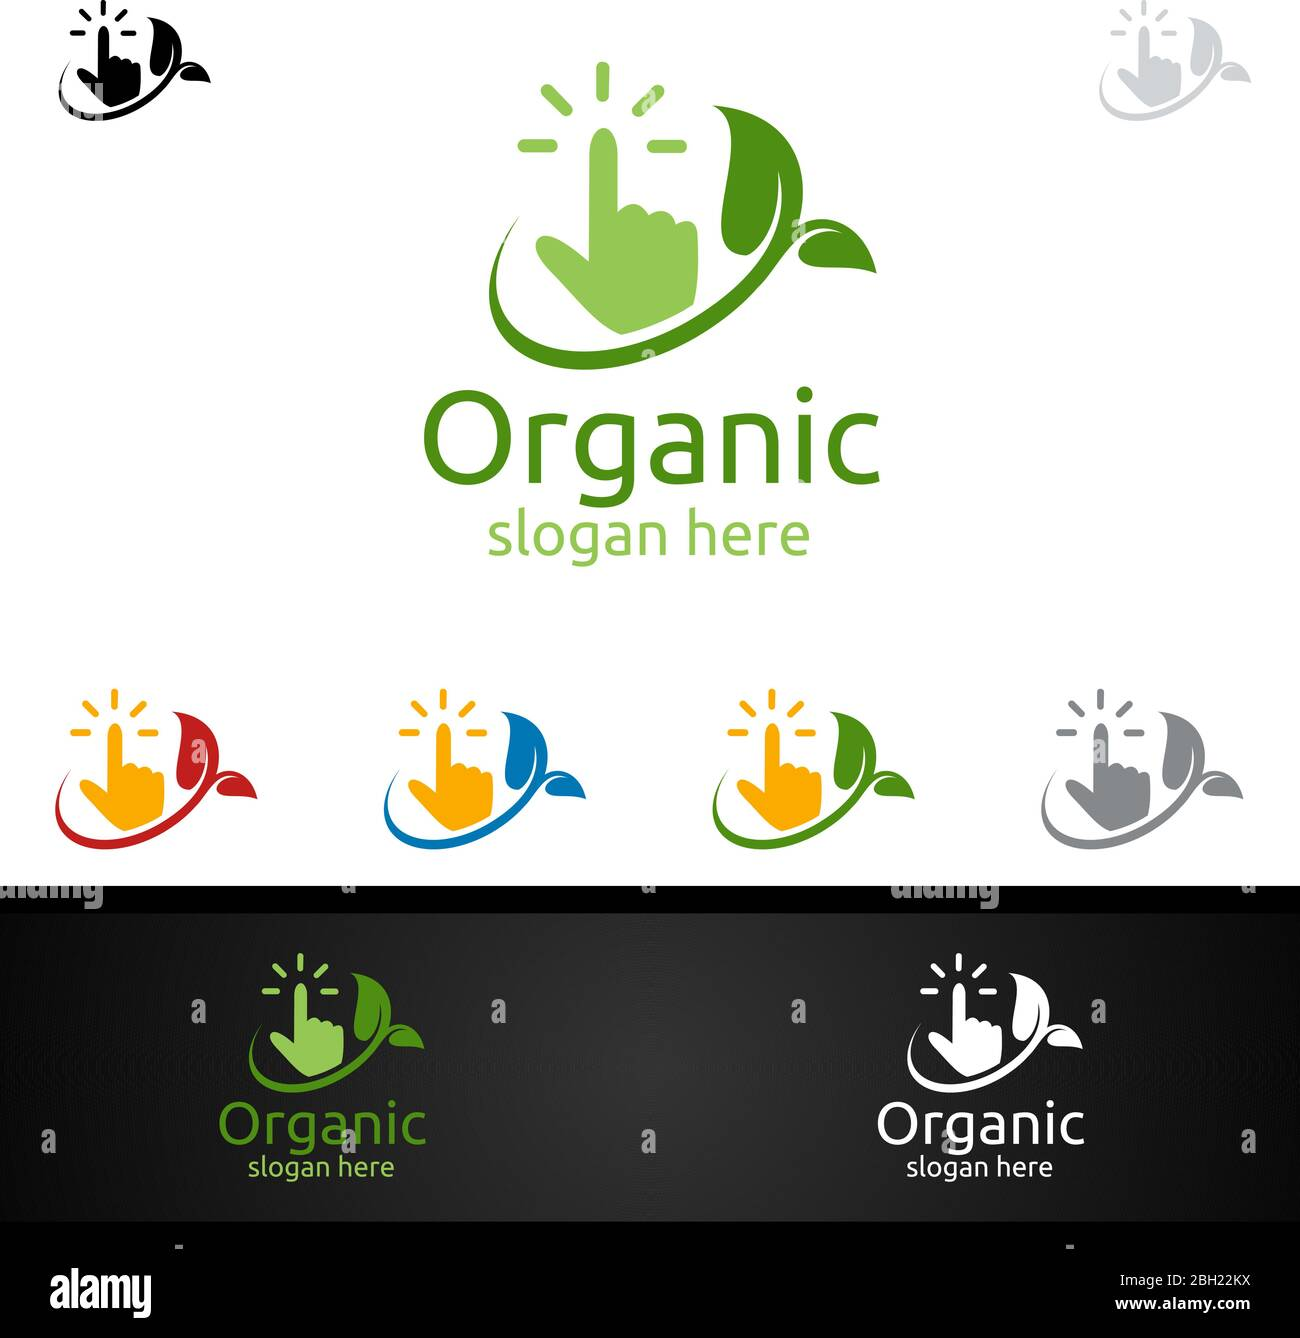 Online Natural And Organic Logo Design Template For Herbal Ecology Health Yoga Food Or Farm Concept Stock Vector Image Art Alamy